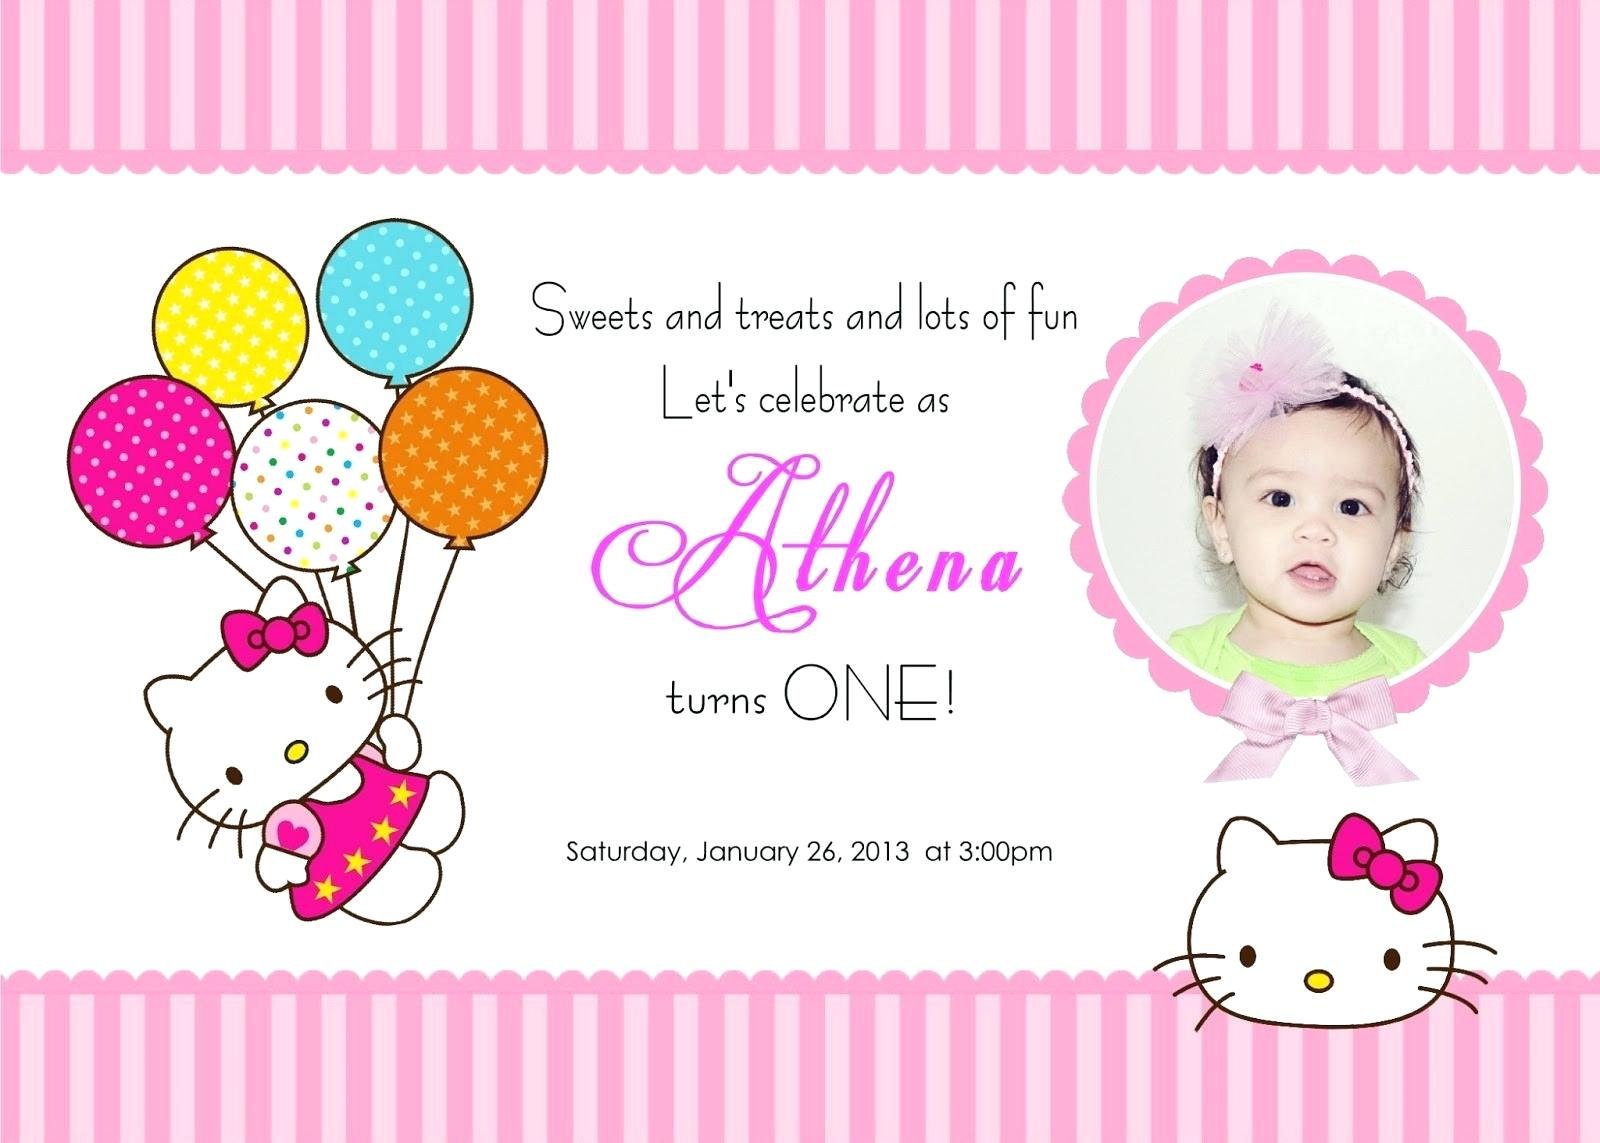 birthday invitation photoshop template ; birthday-invitation-photoshop-template-full-size-of-invitations-templates-with-plus-elements